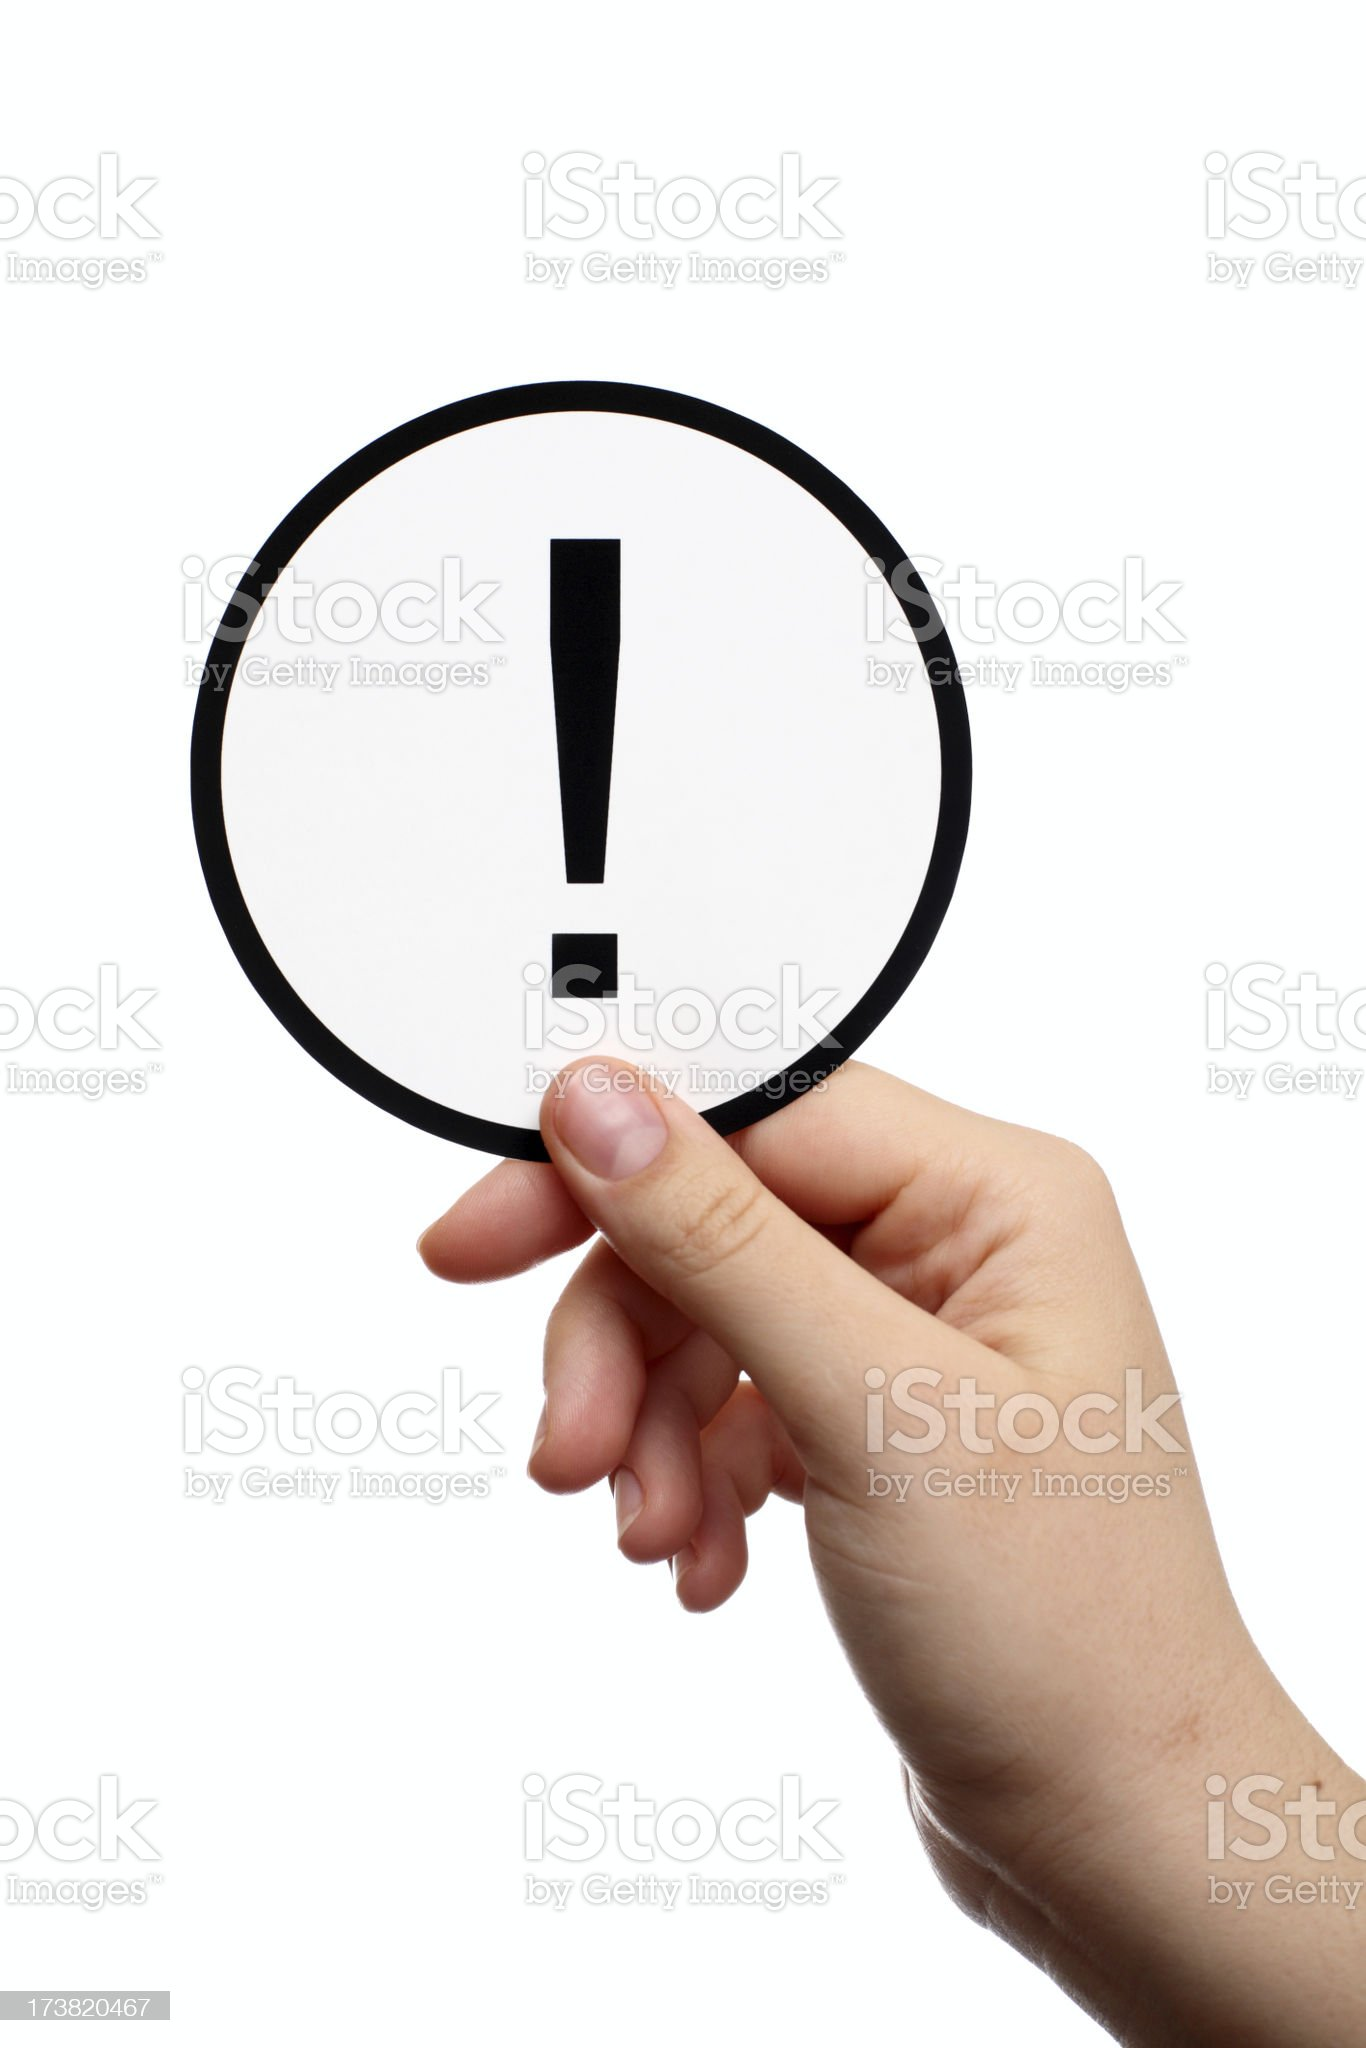 Exclamation mark in hand royalty-free stock photo